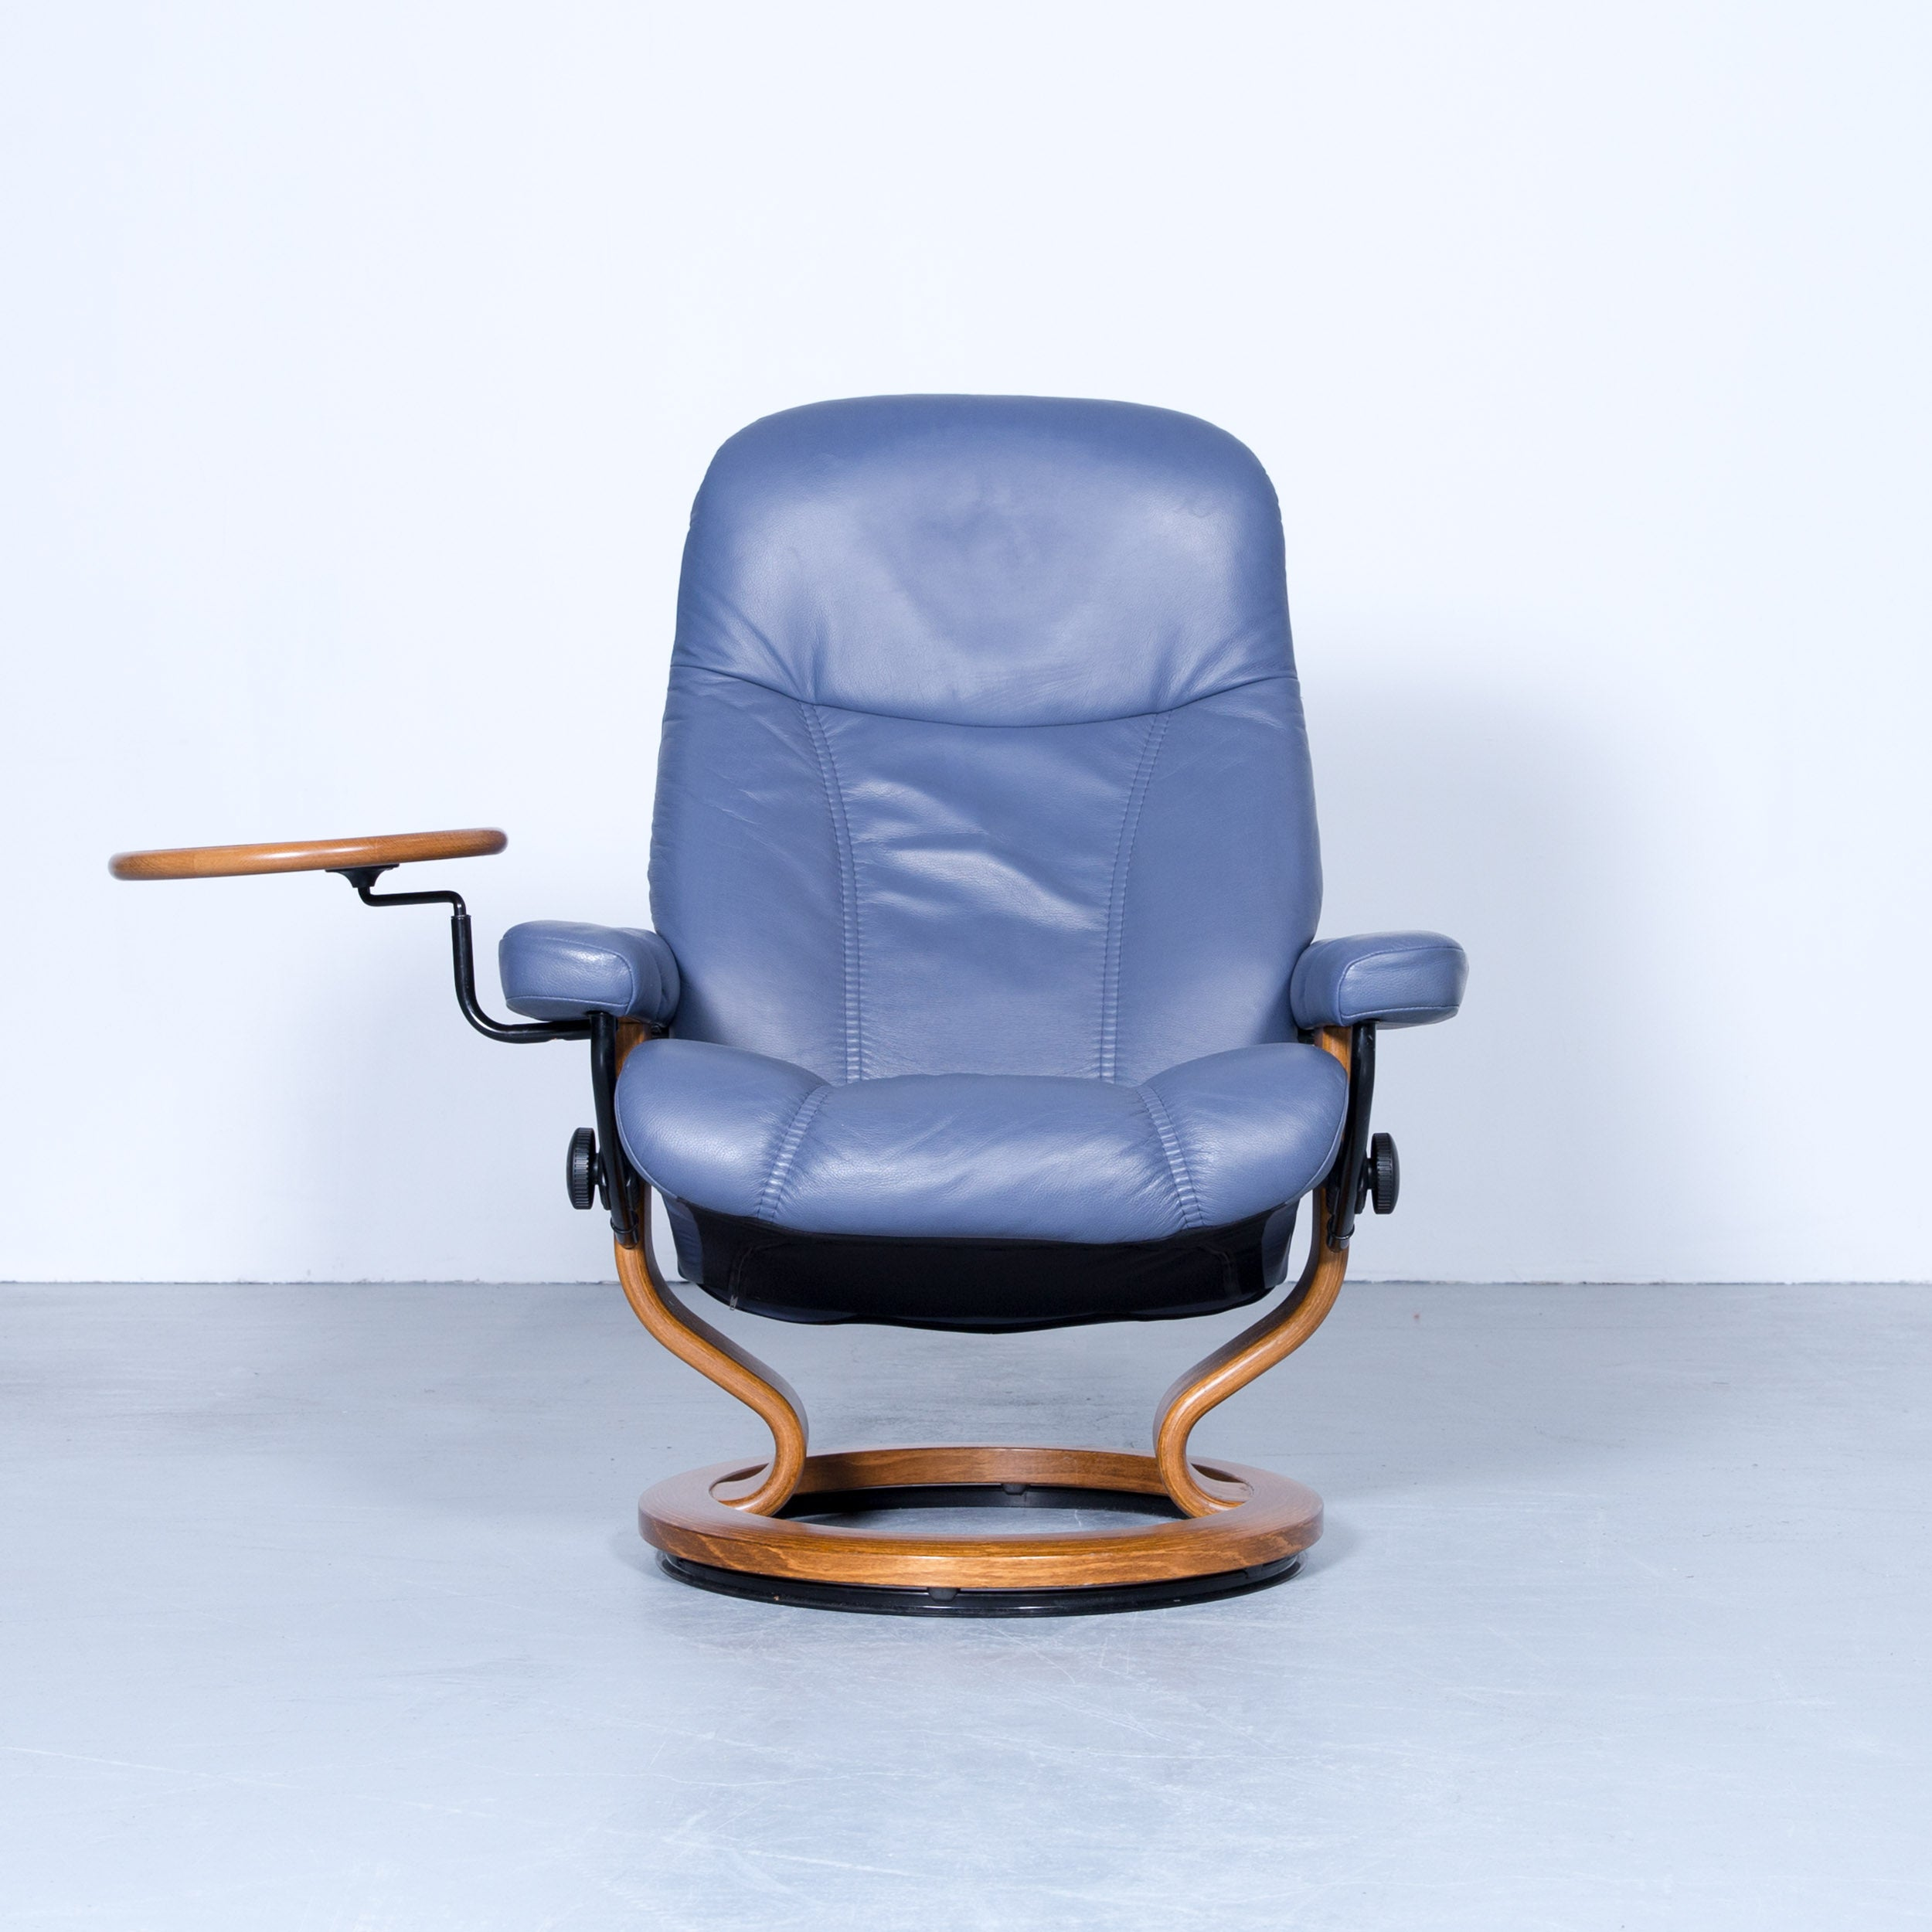 Stressless Consul Relax Armchair Light Blue Leather Relax Function